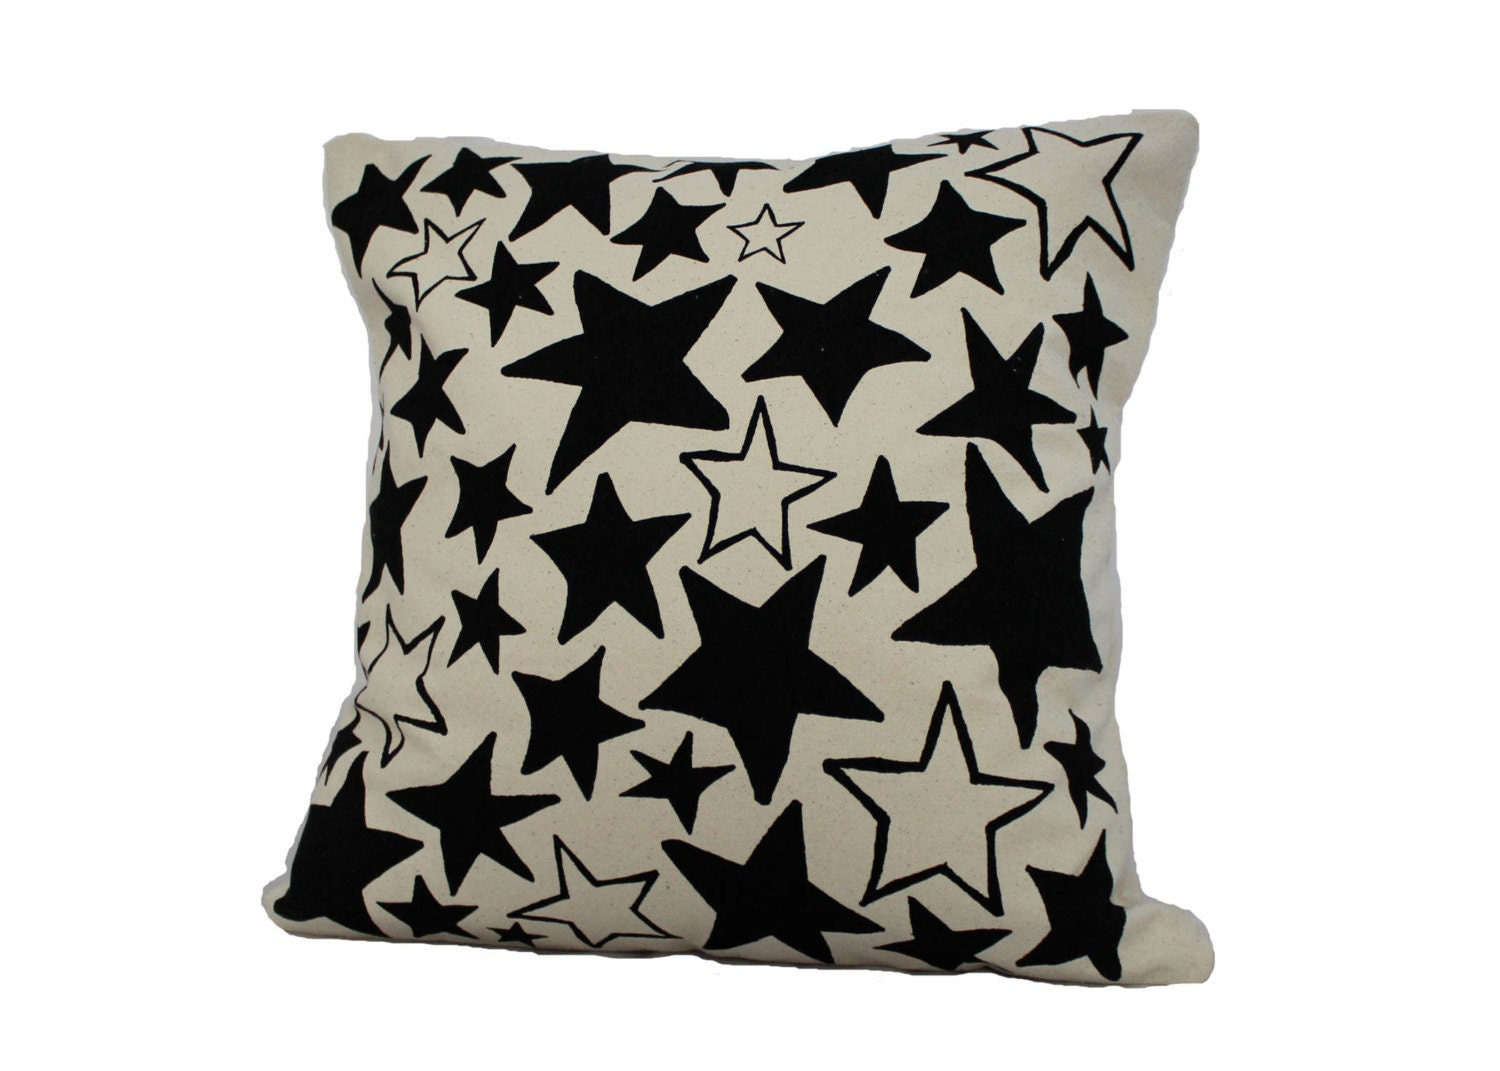 Star Bright Pillow Screen Print On Cotton Canvas Pillow